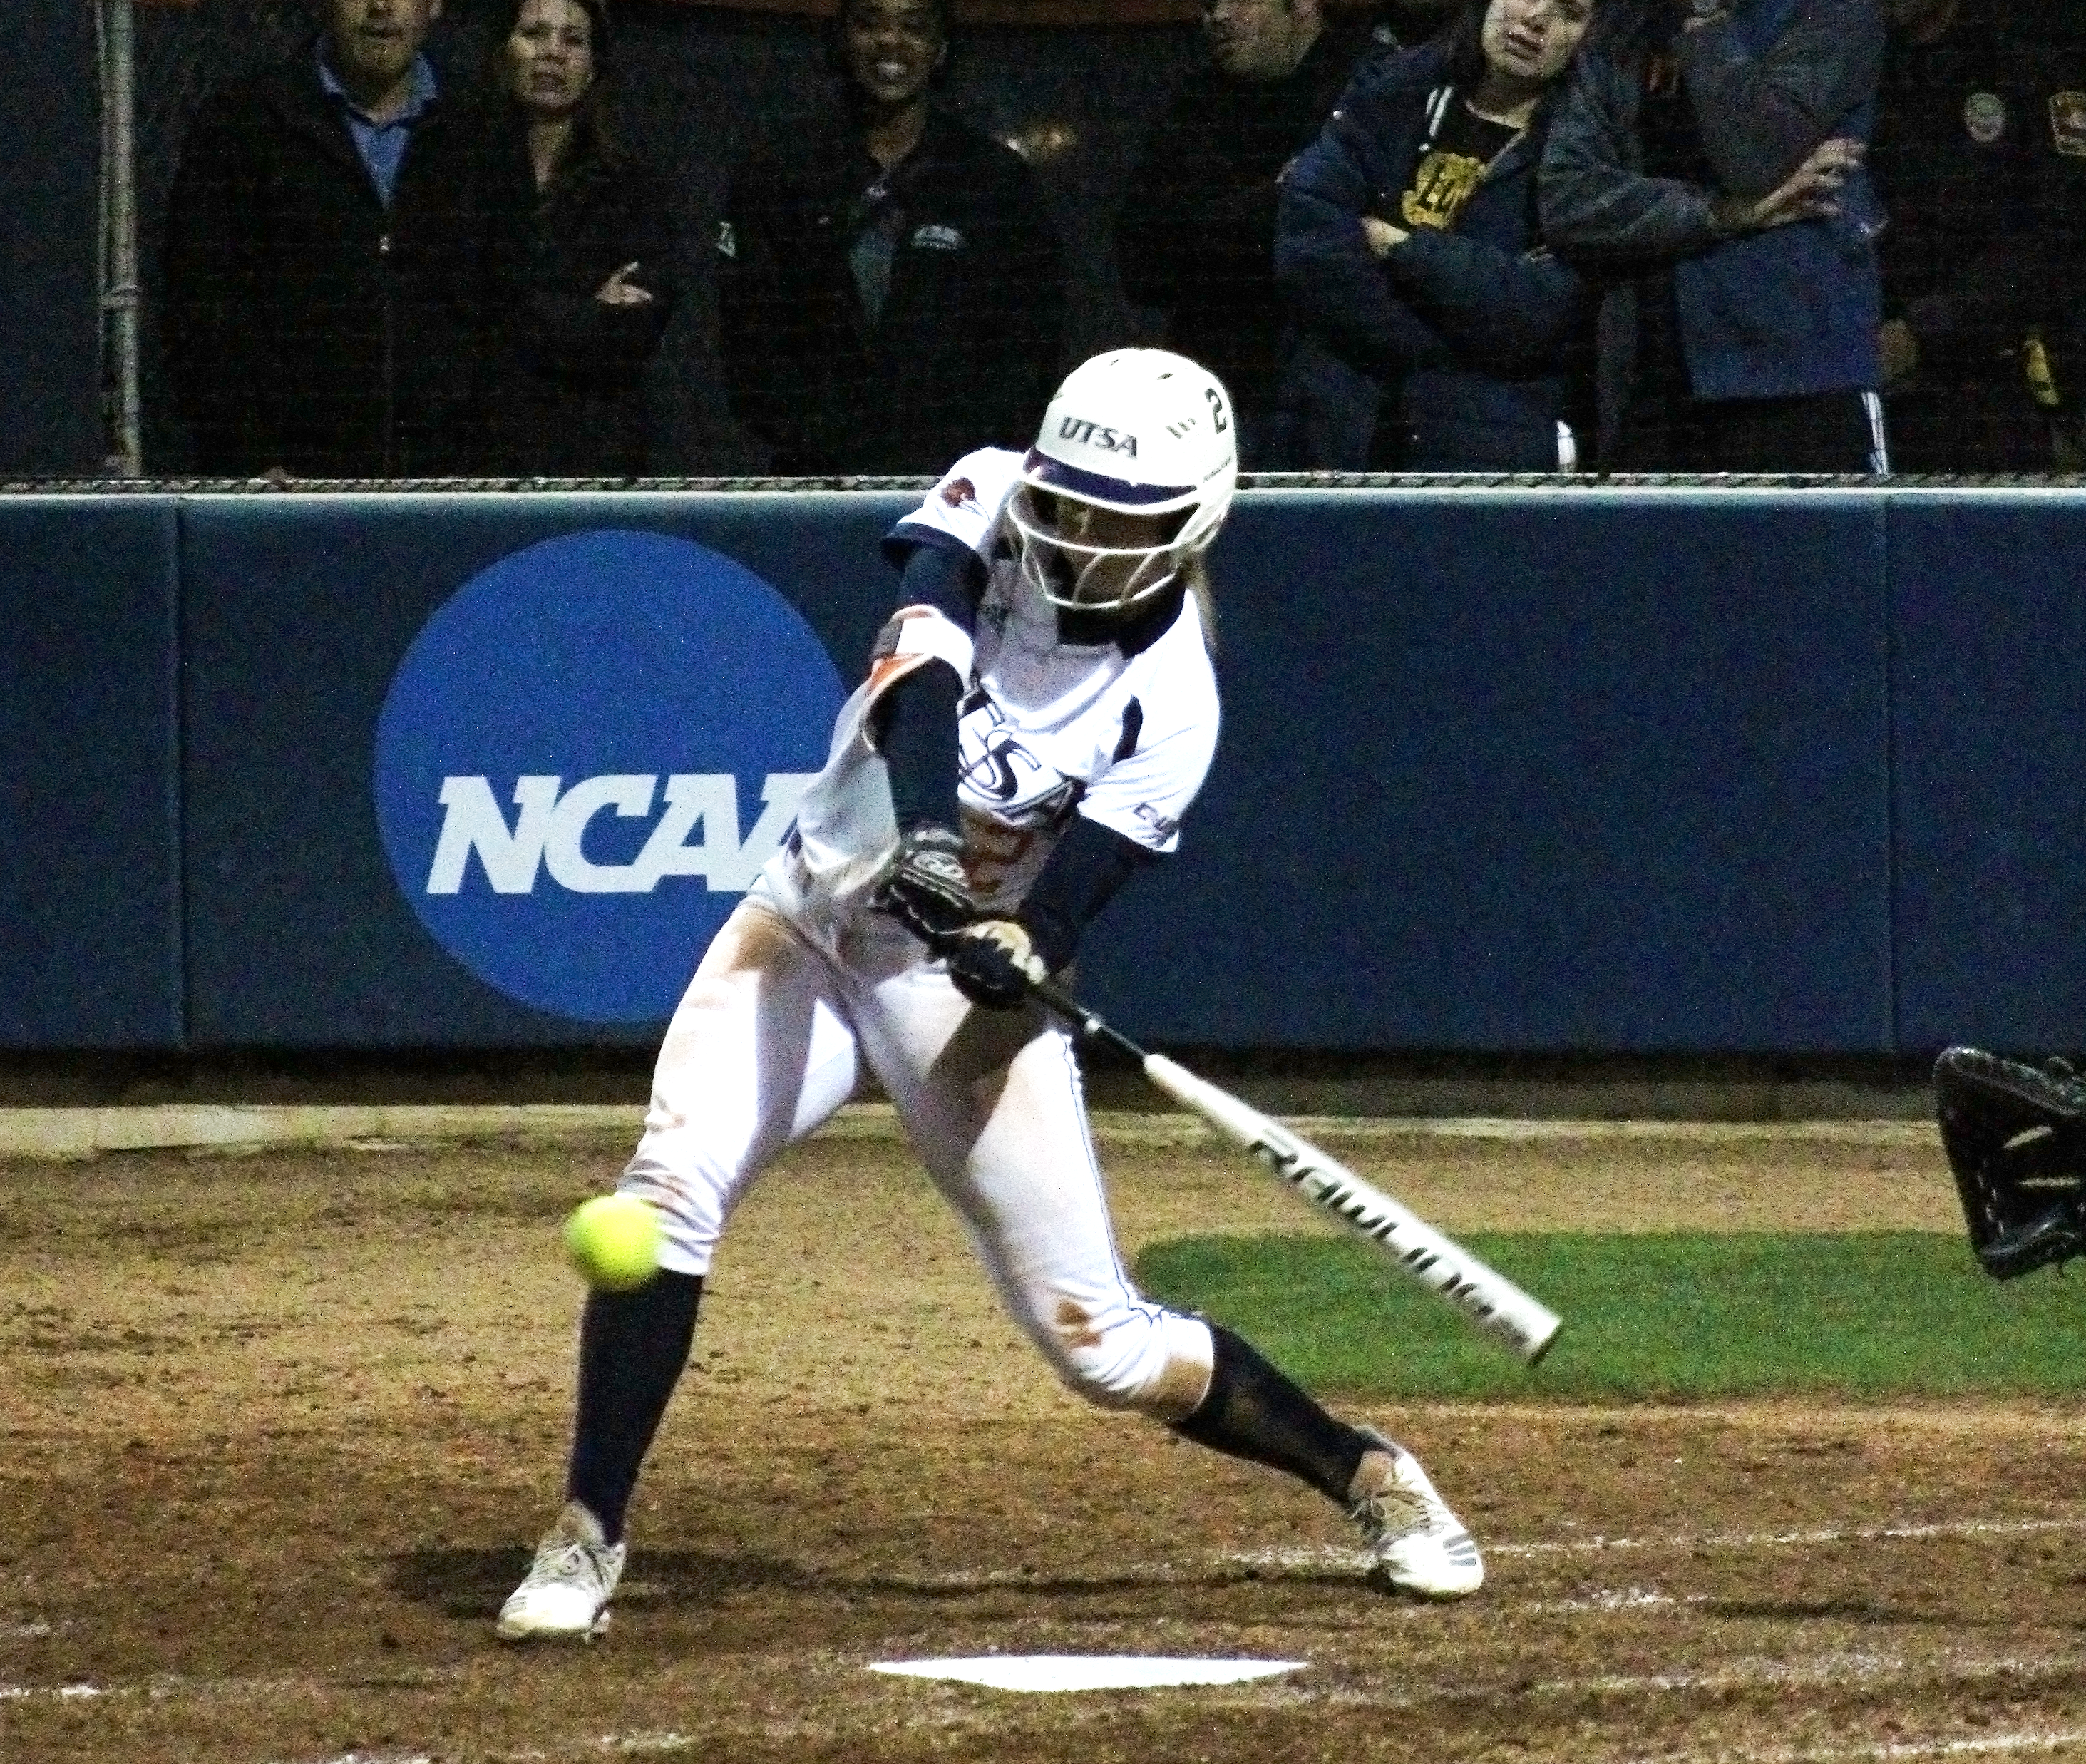 Celeste Loughman takes a swing at a pitch to get on base. Ethan Gullett/UTSA Athletics